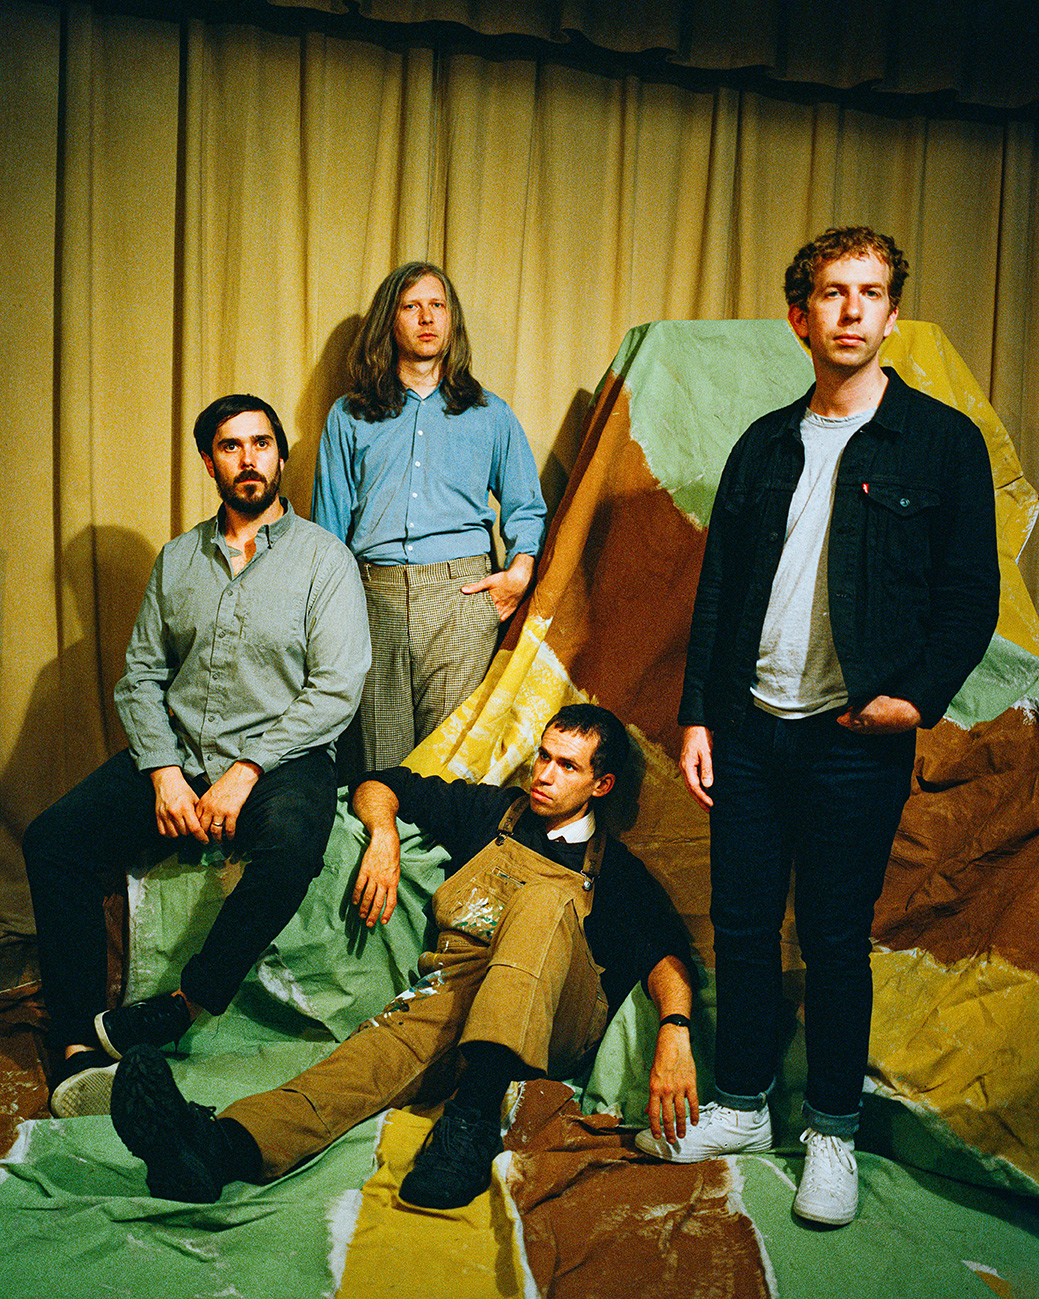 Parquet Courts Announce new album 'Sympathy for Life' and release new track